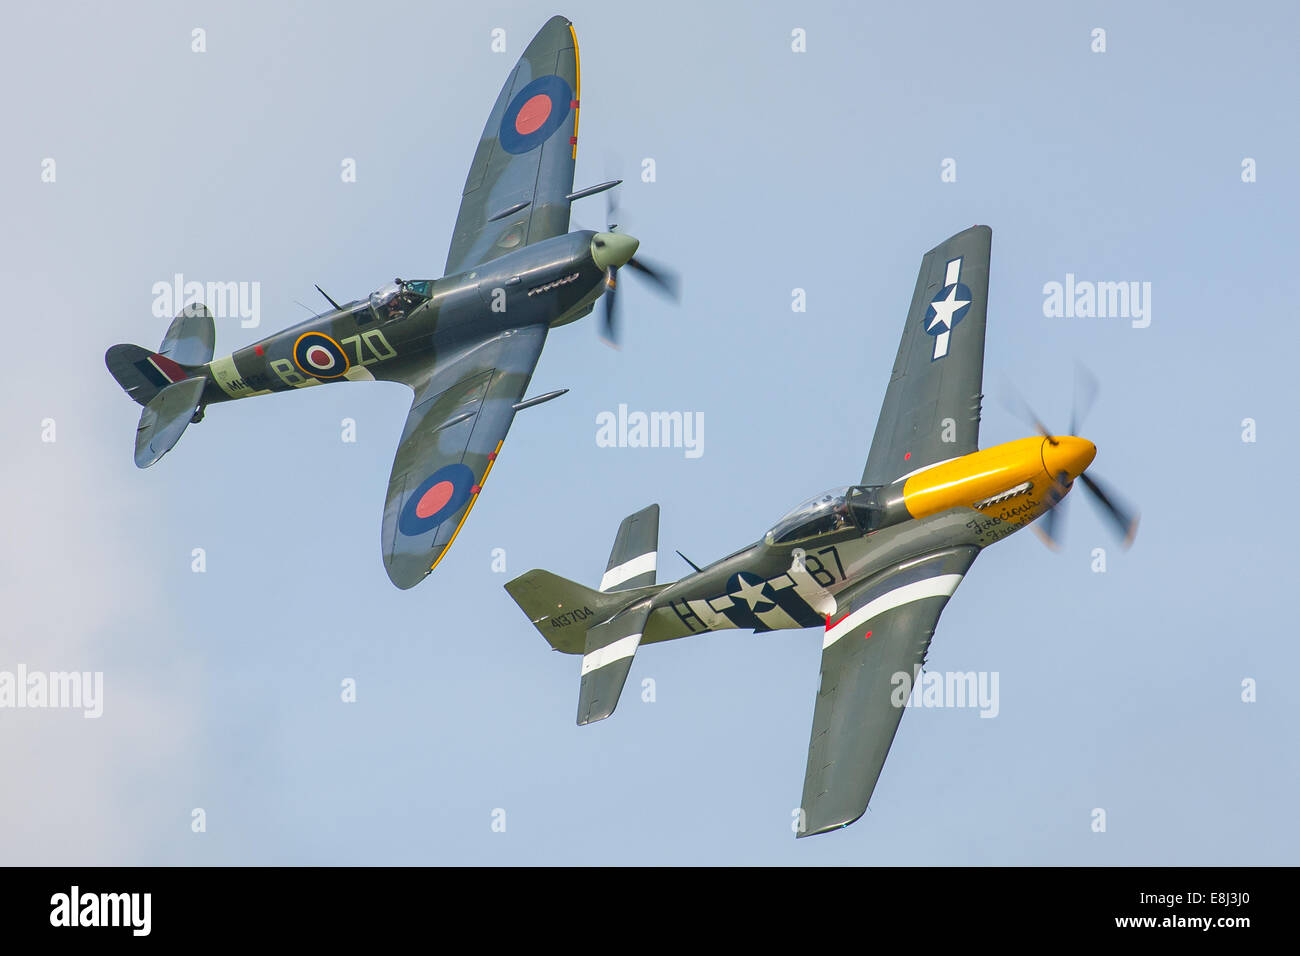 Spitfire and P51 Mustang display at the Goodwood Revival 2014, West Sussex, UK - Stock Image